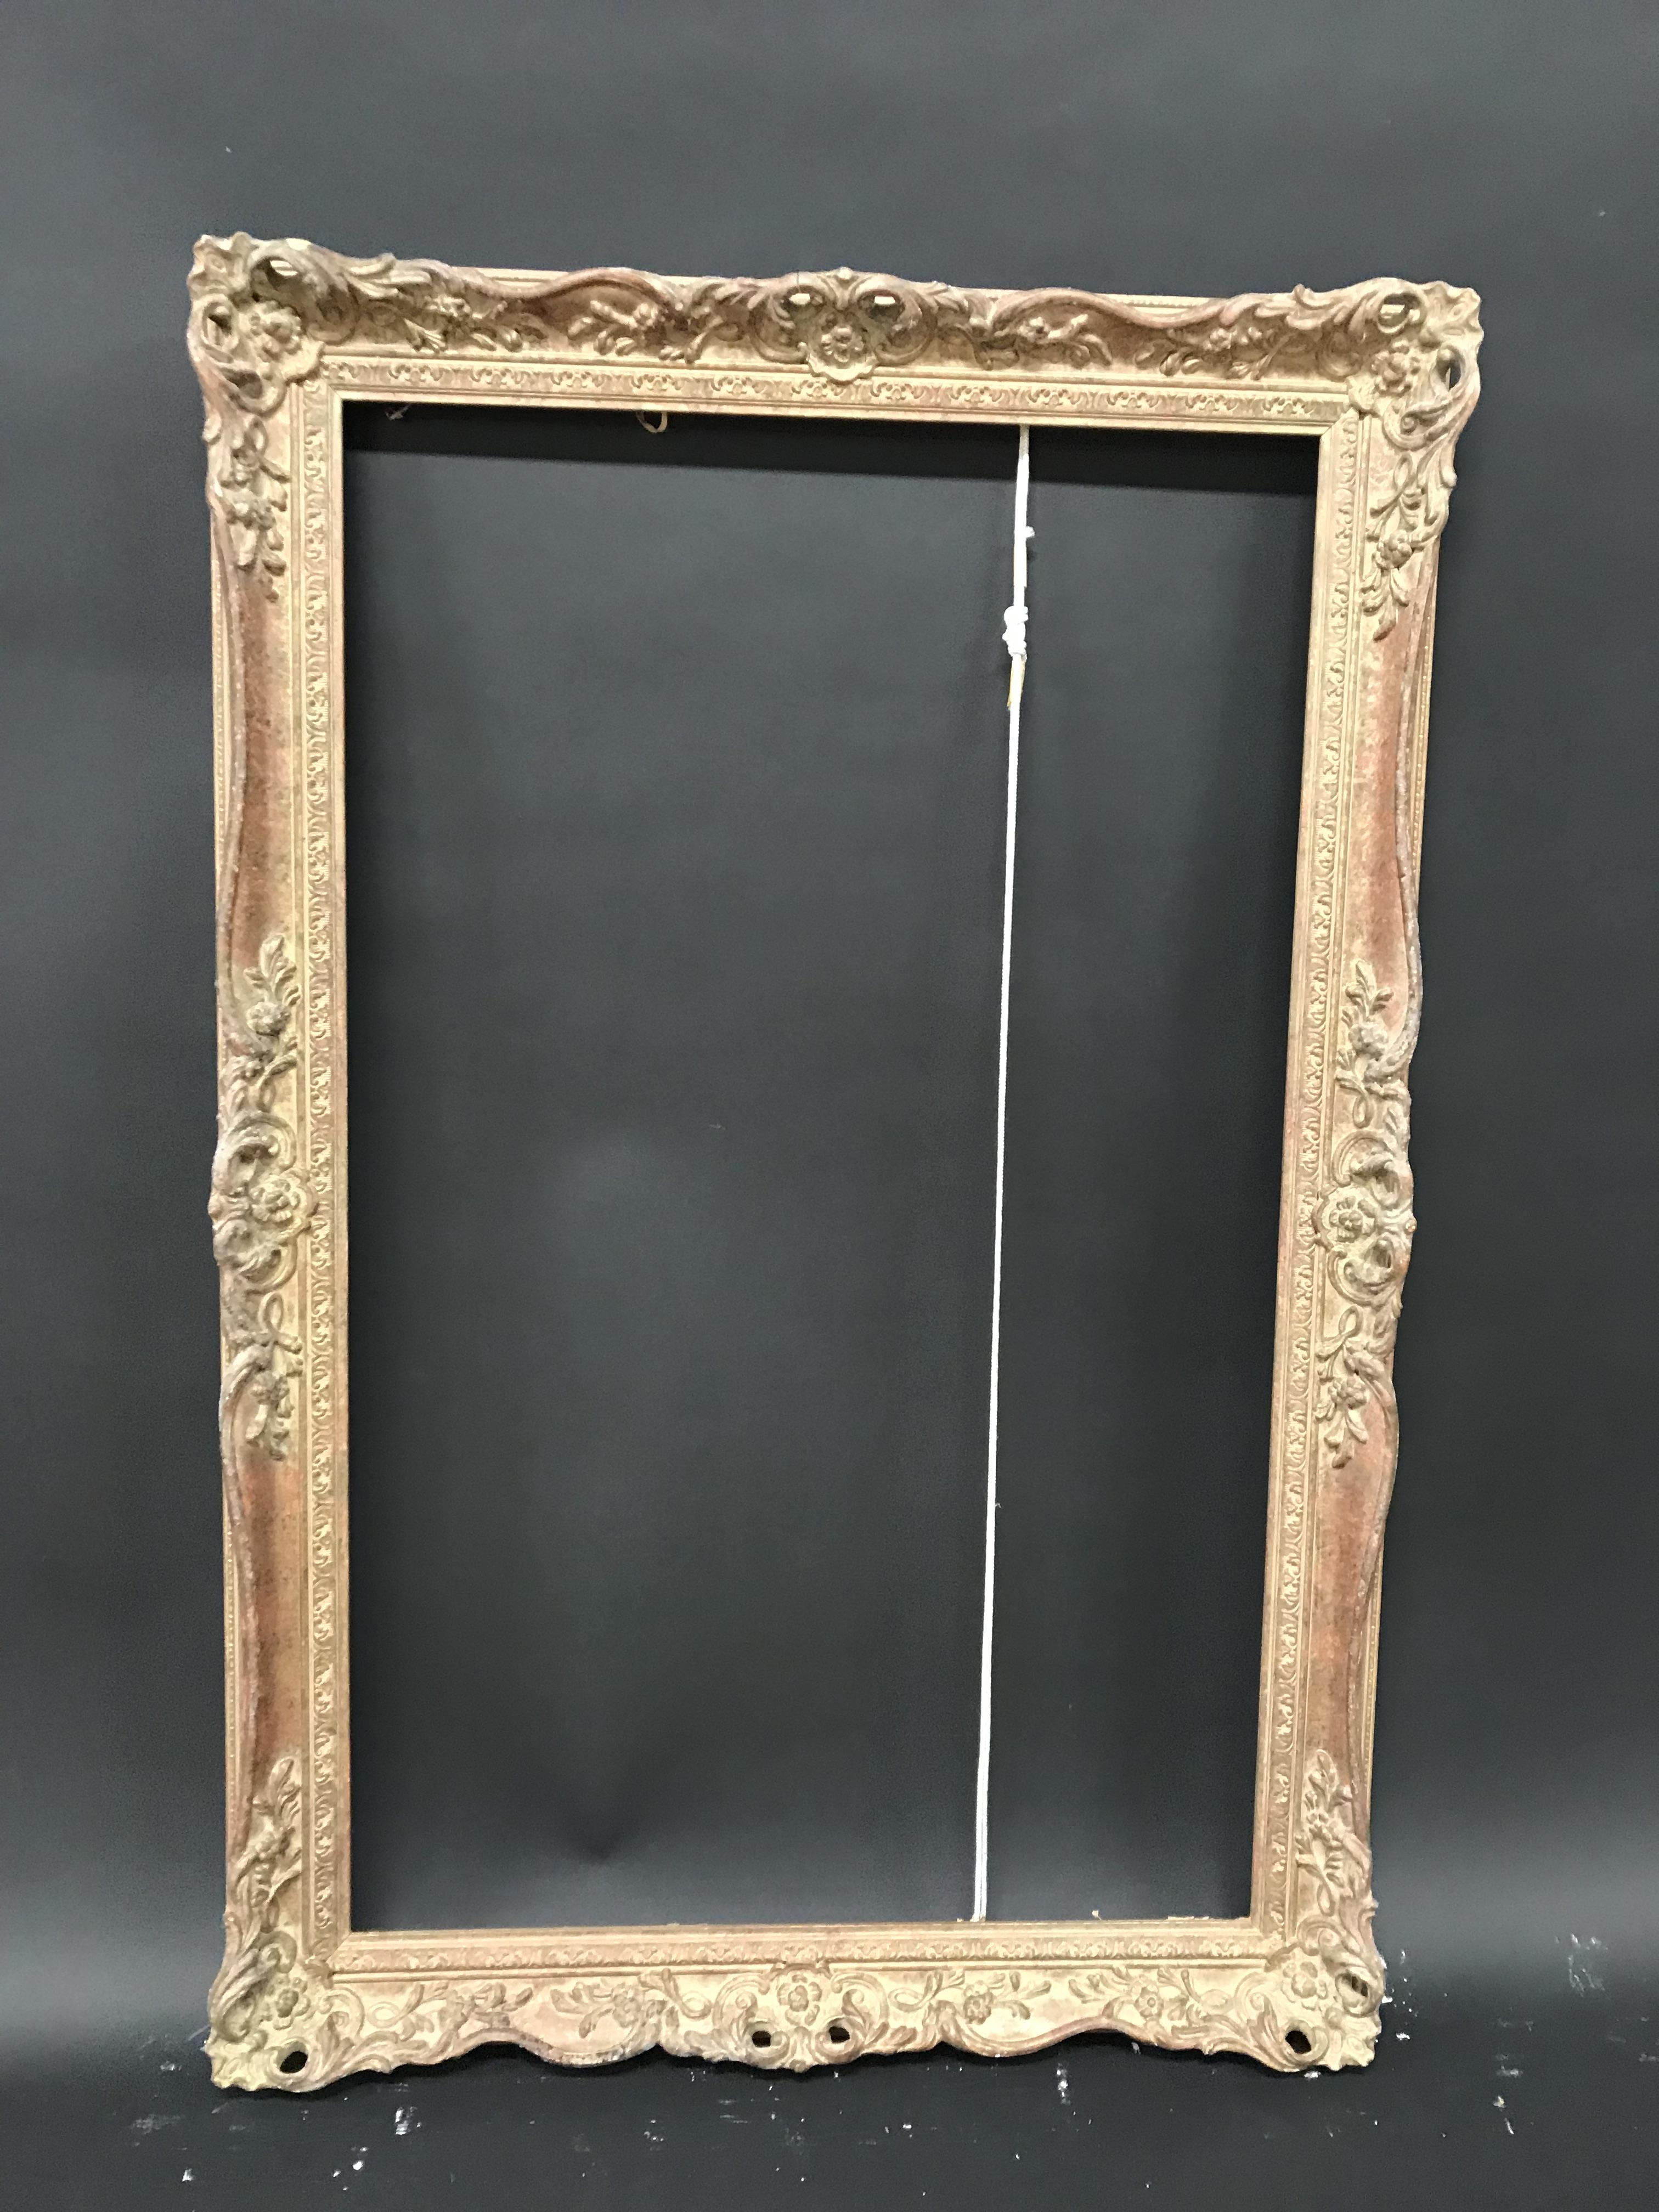 Lot 8 - 20th Century English School. A Gilt Composition Frame, with Swept and Pierced Centres and Corners,